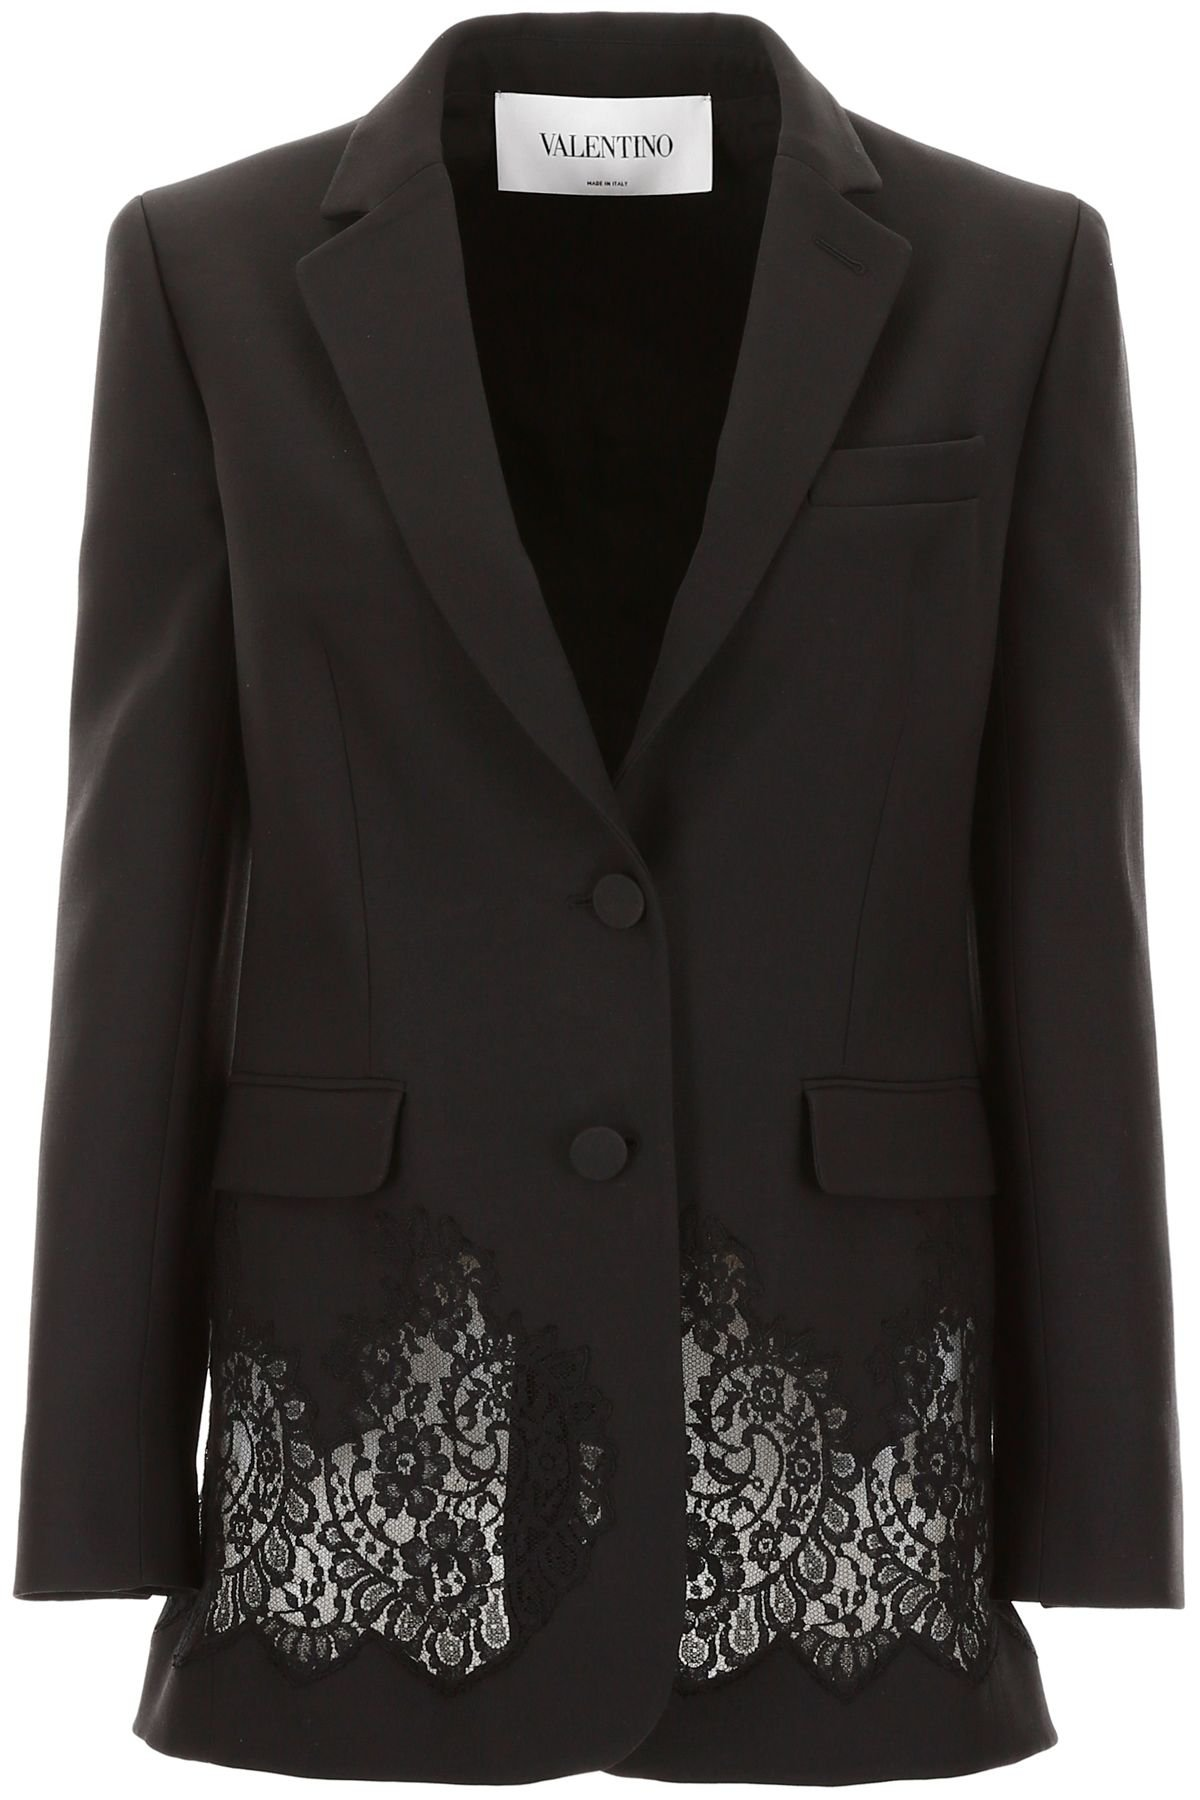 Valentino Jacket With Lace